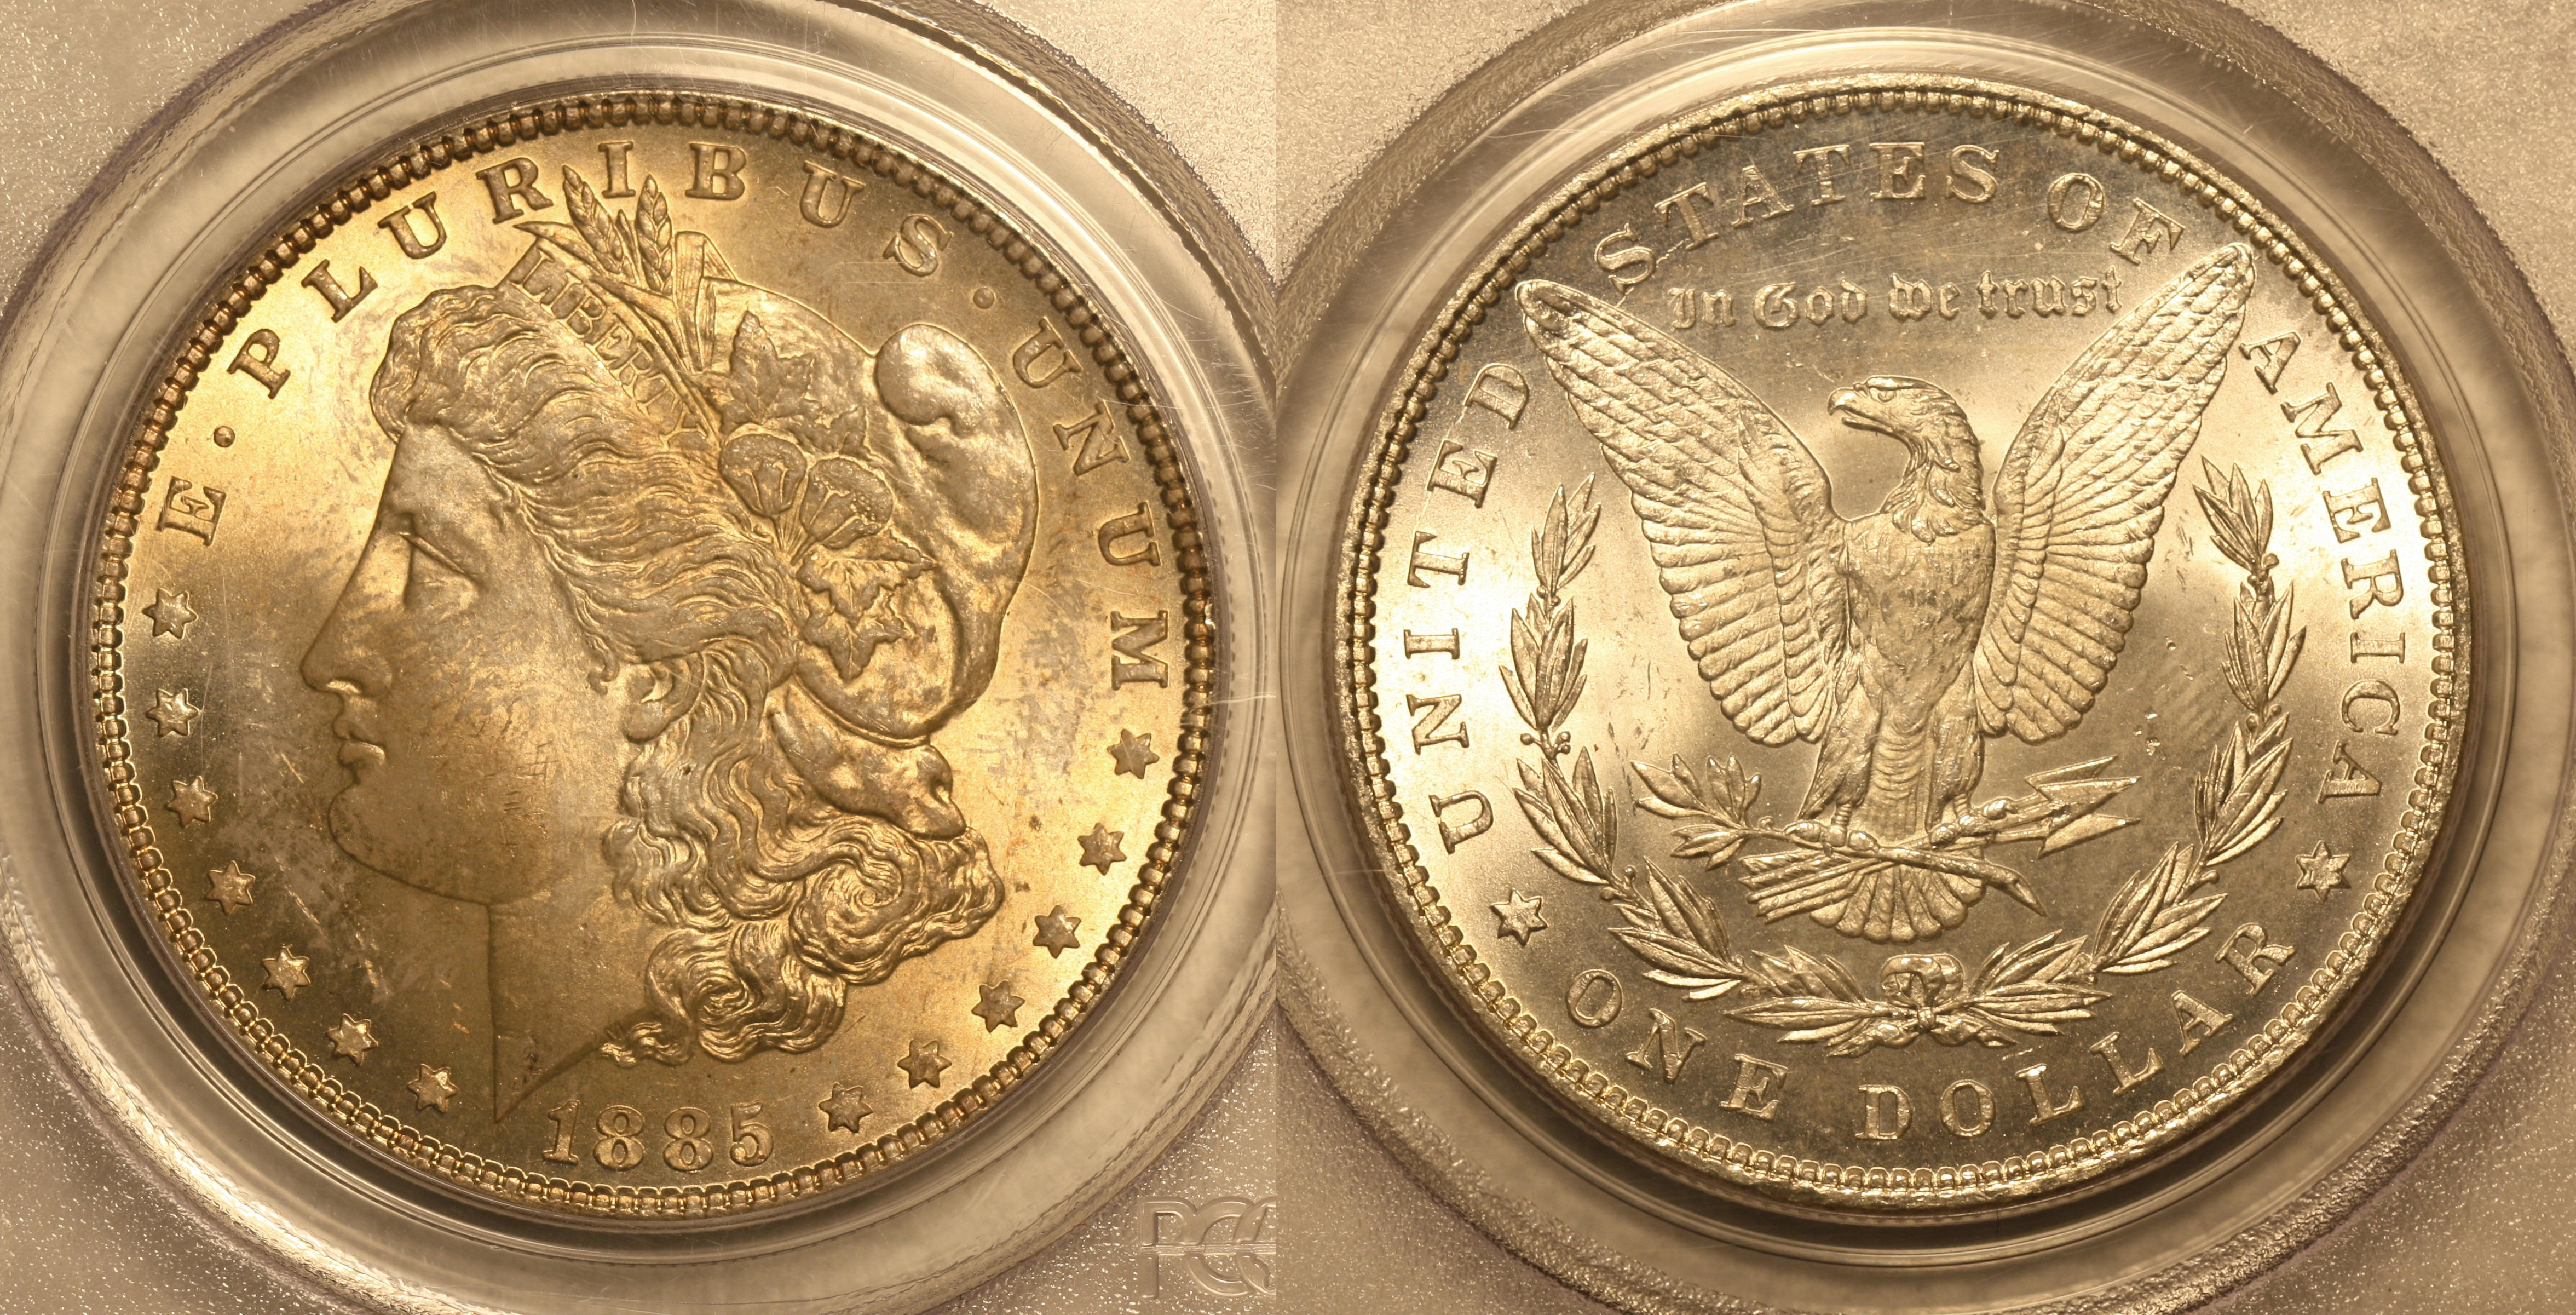 1885 Morgan Silver Dollar PCGS MS-64 camera